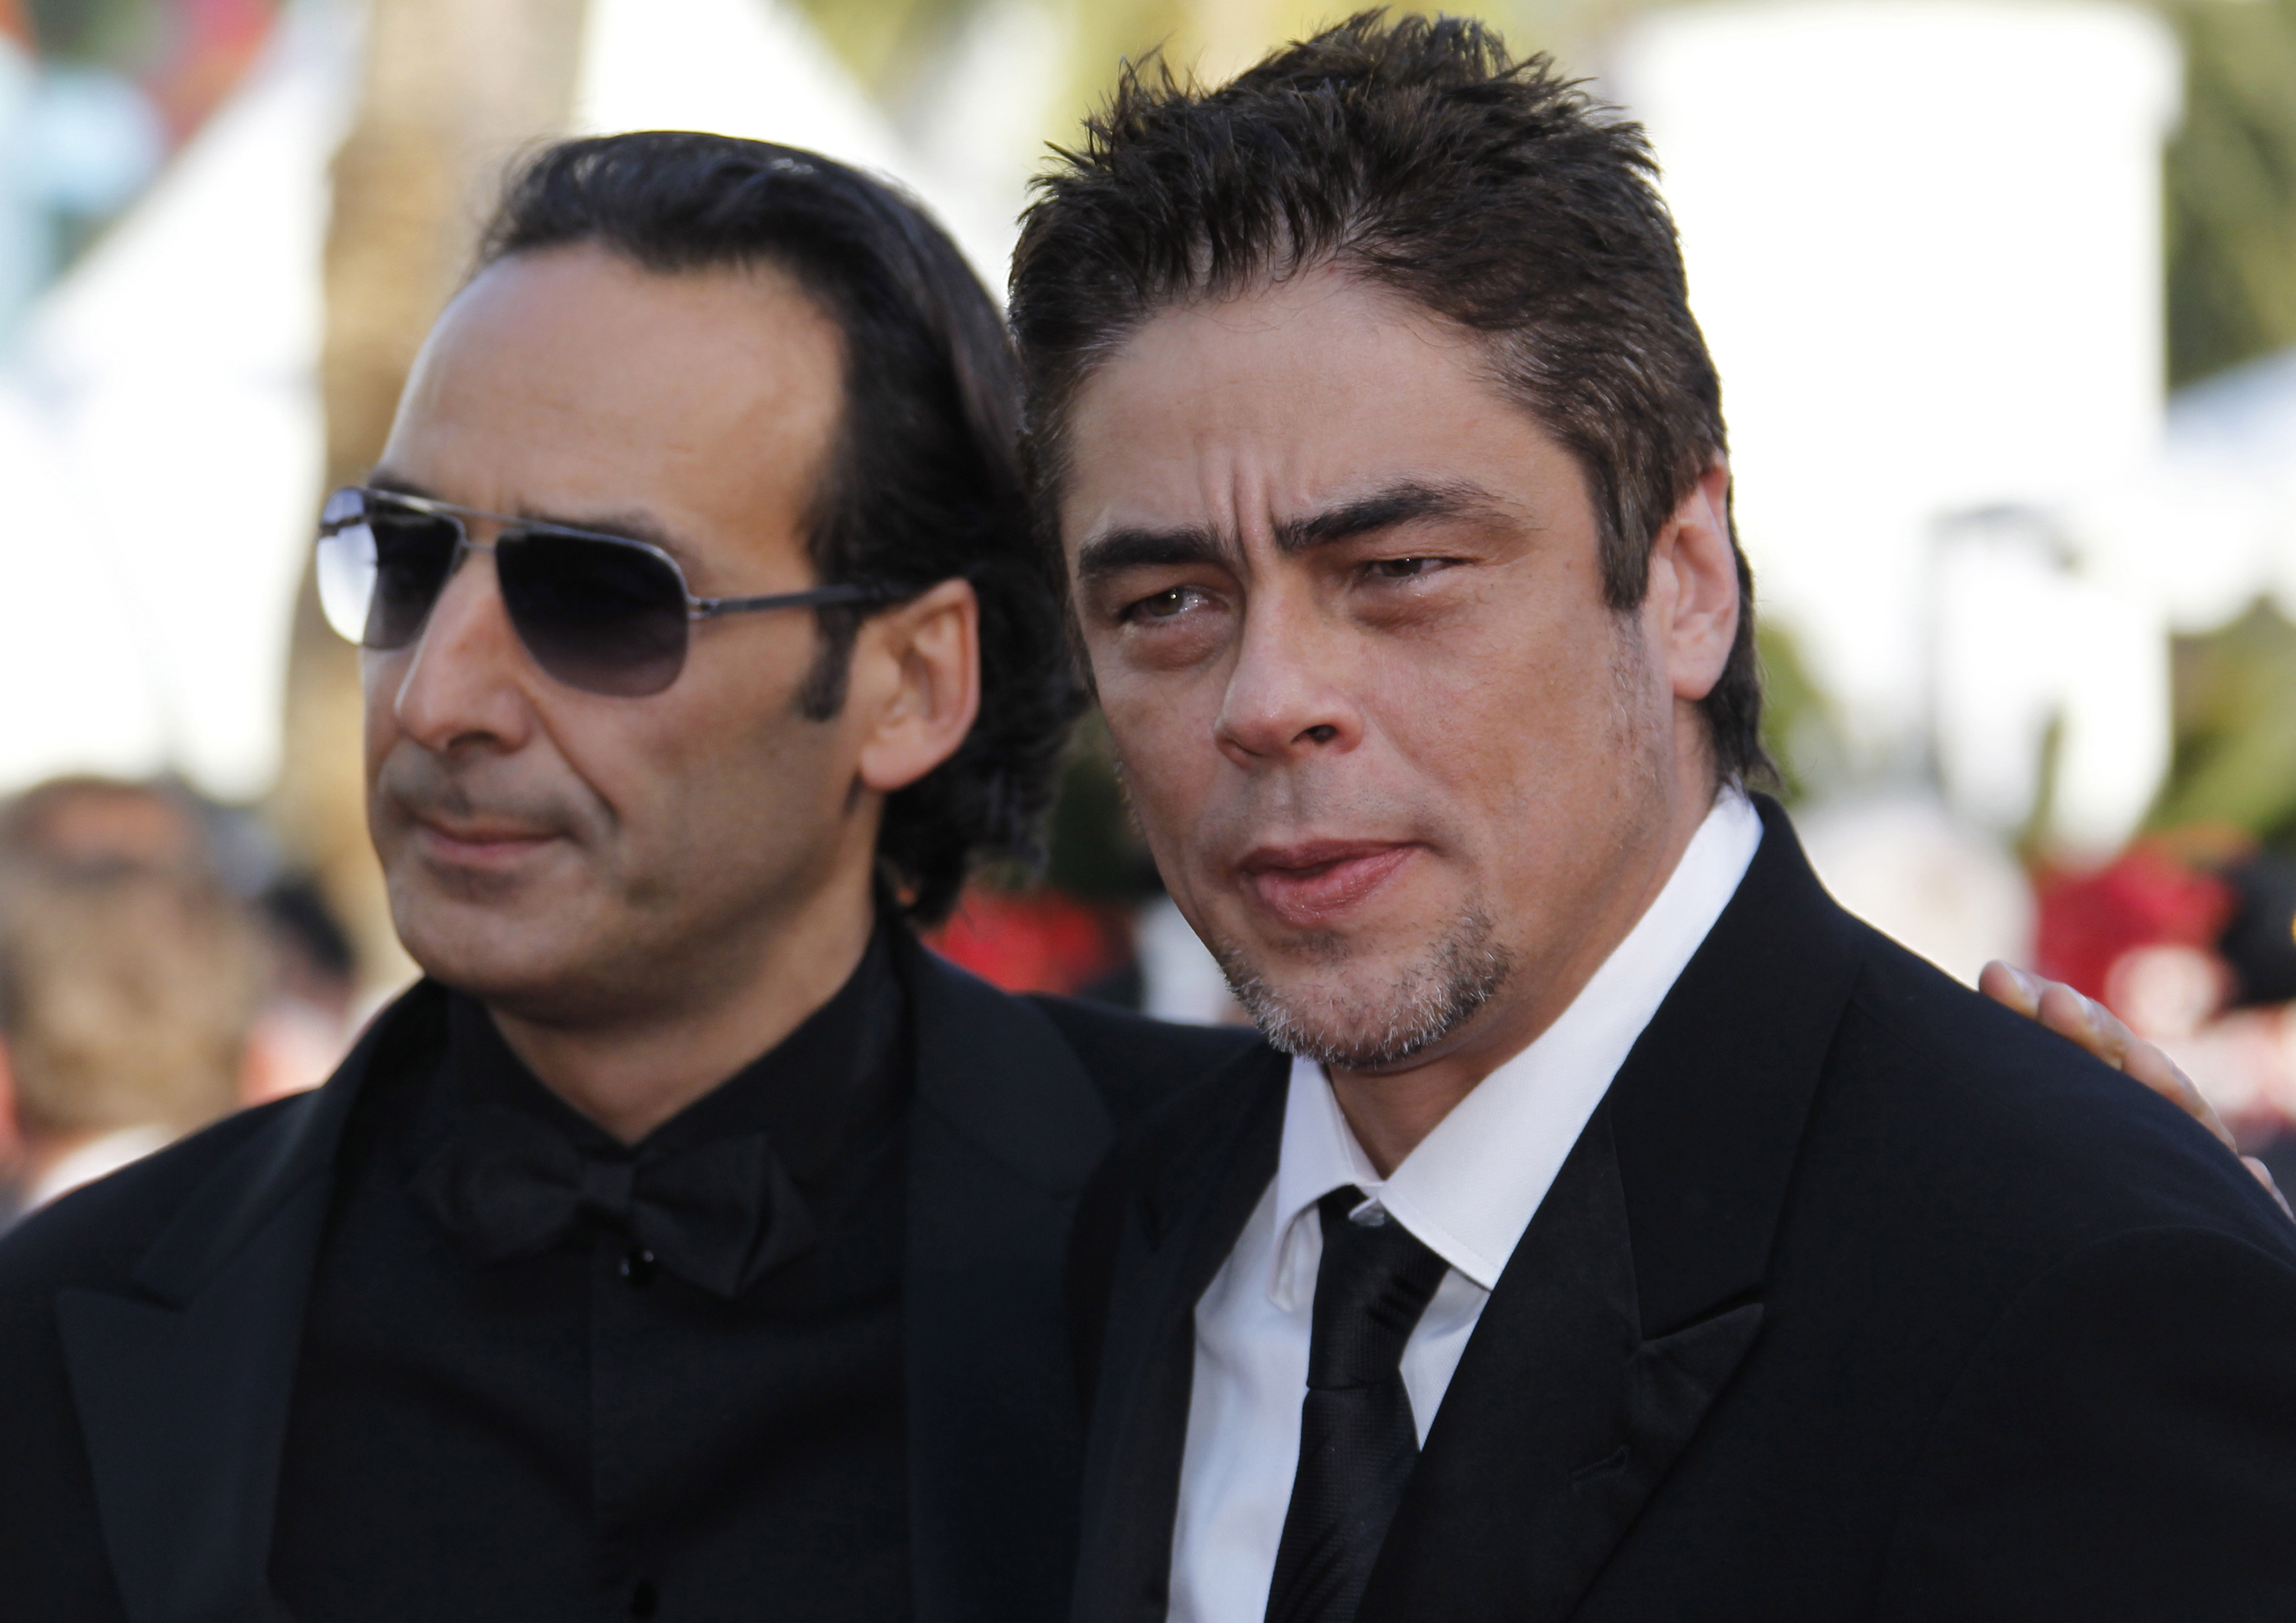 Jury Members Puerto Rican Actor Benicio Del Toro (r) and French Composer Alexandre Desplat (l) Arrive For the Screening of the Movie 'Biutiful' During the 63rd Cannes Film Festival in Cannes France 17 May 2010 the Movie by Alejandro Gonzalez Inarritu is Presented in Competition at the Cannes Film Festival 2010 Running From 12 to 23 May France CannesFrance Cannes Film Festival 2010 - May 2010